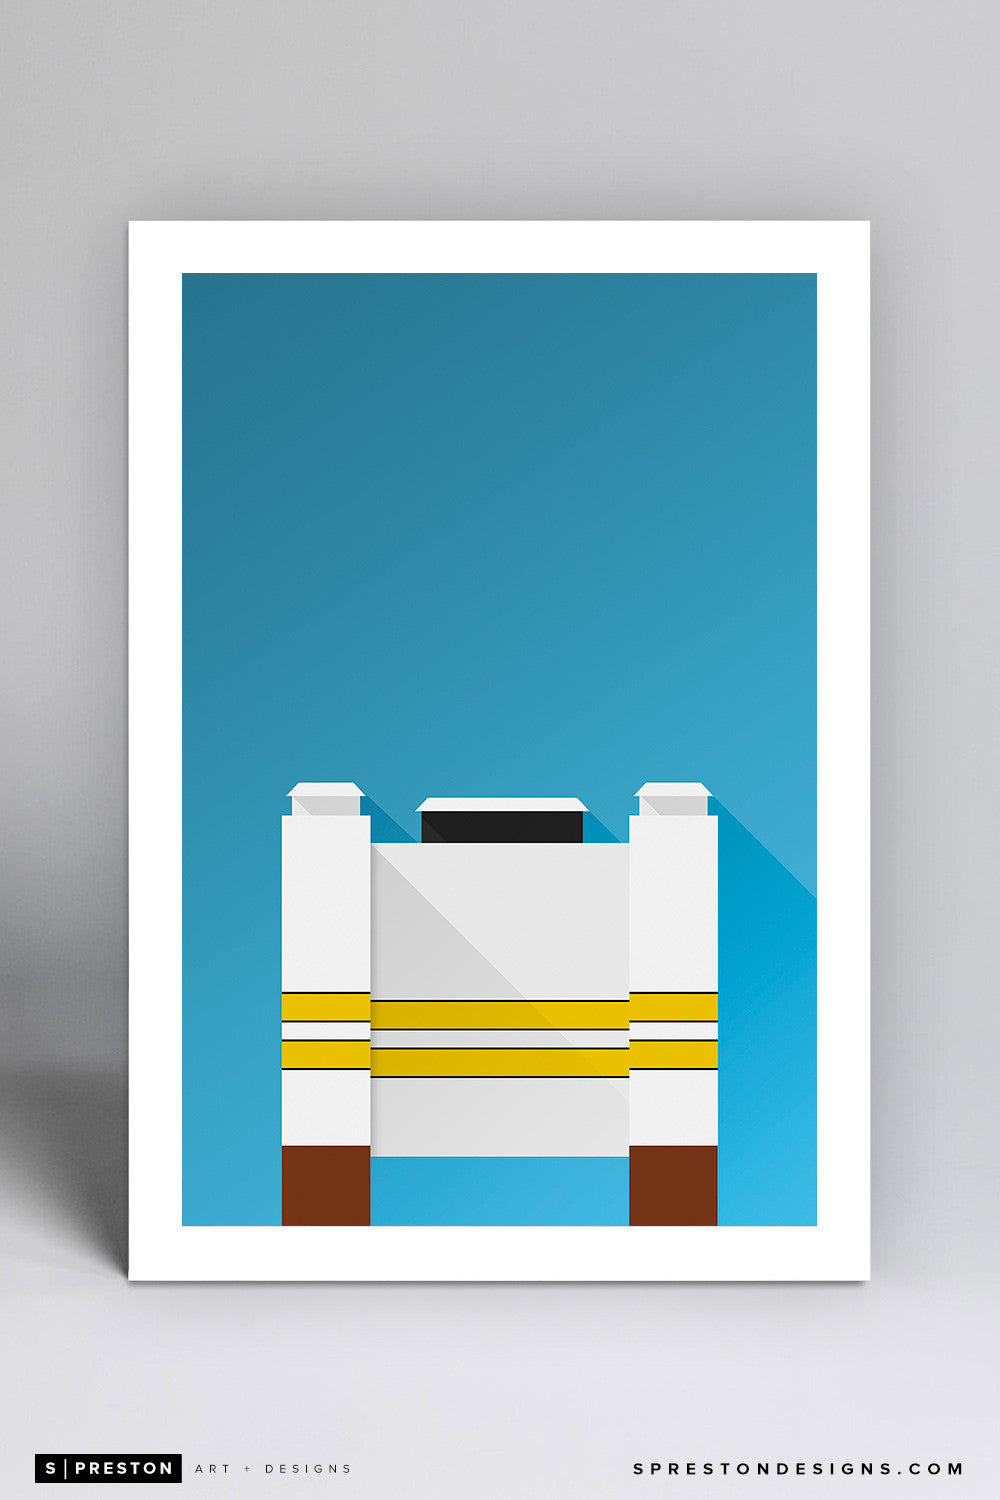 Minimalist Ross-Ade Stadium - Purdue University - S. Preston